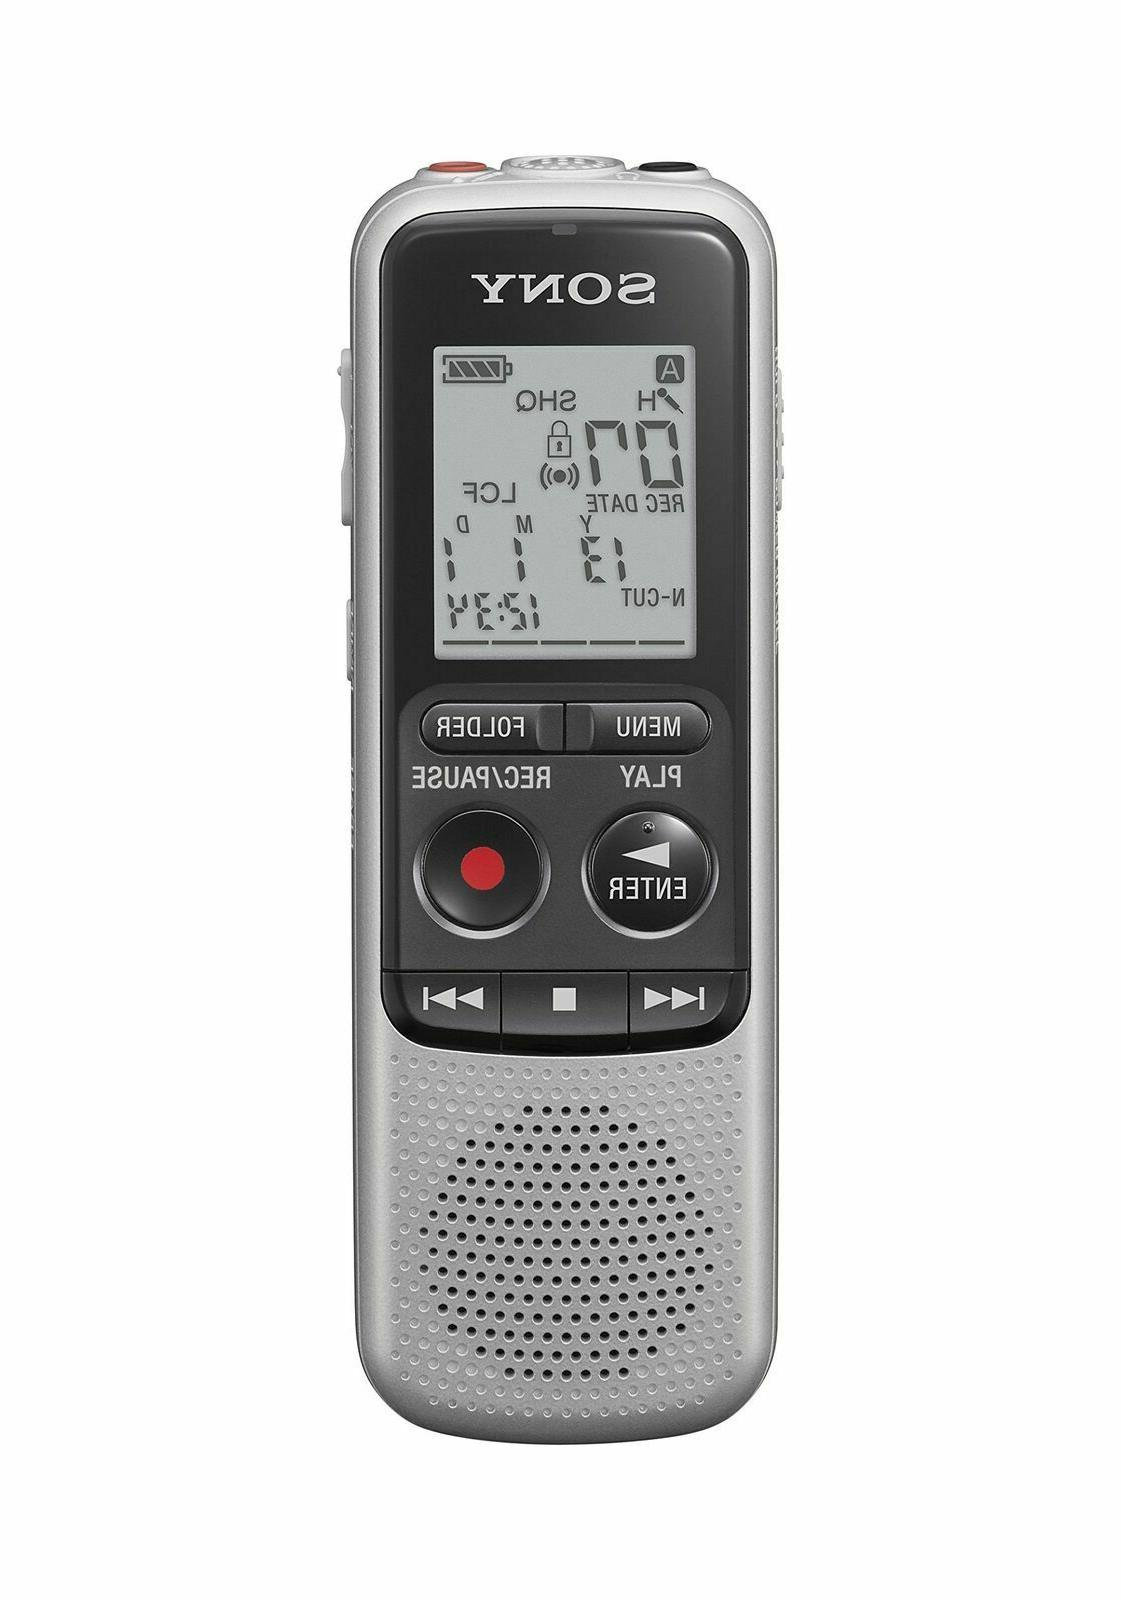 Paranormal Ghost Sony Voice Recorder